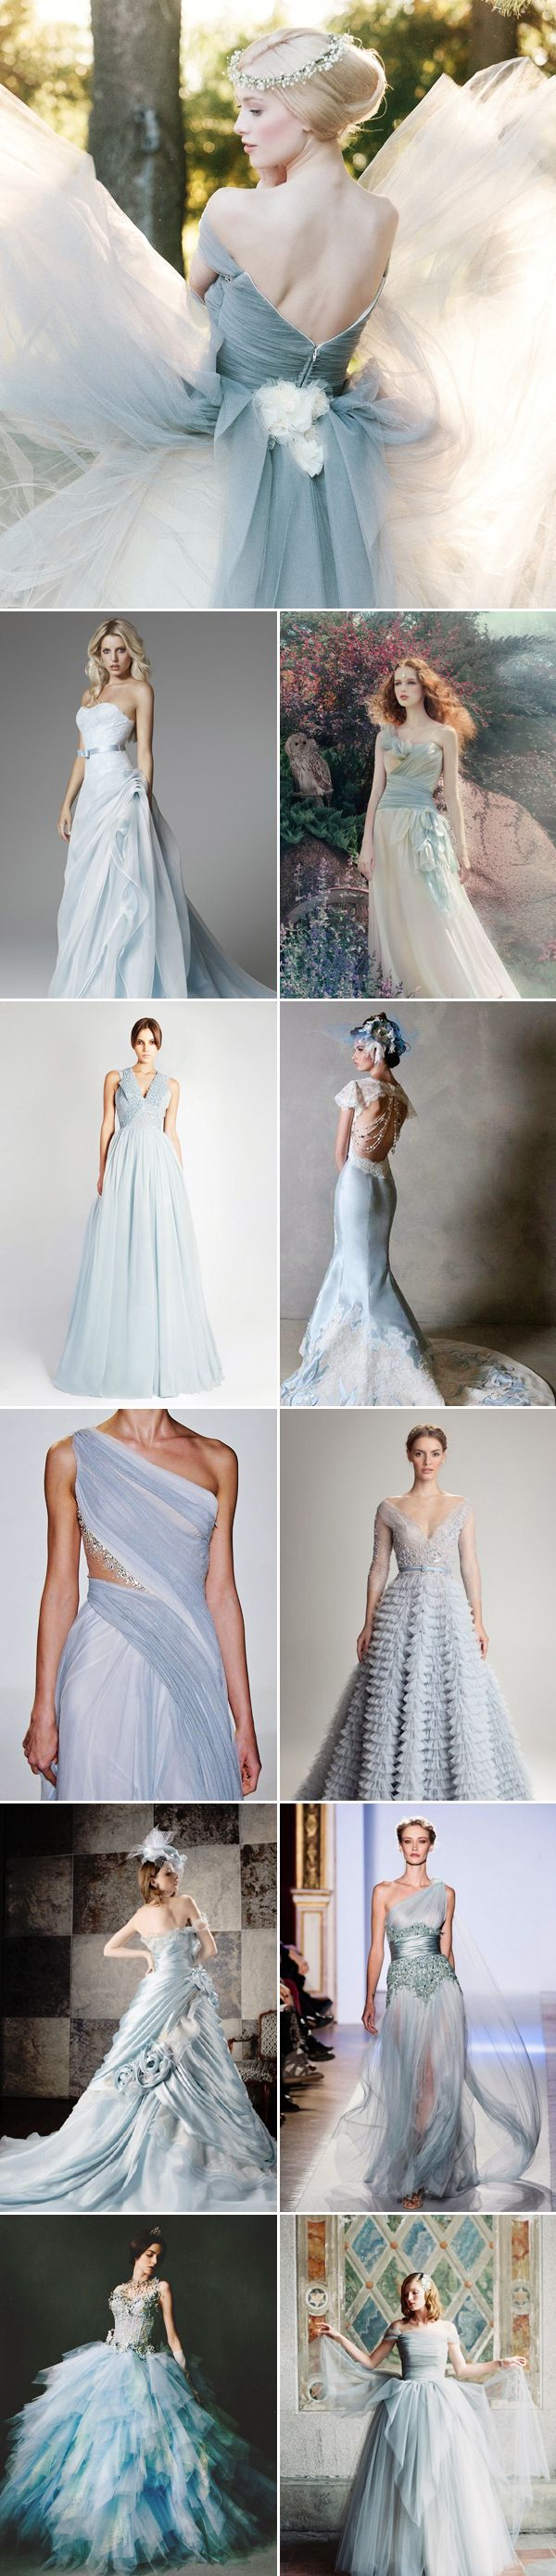 35 Colored Wedding Dresses with a touch of Glam - Dusty Blue